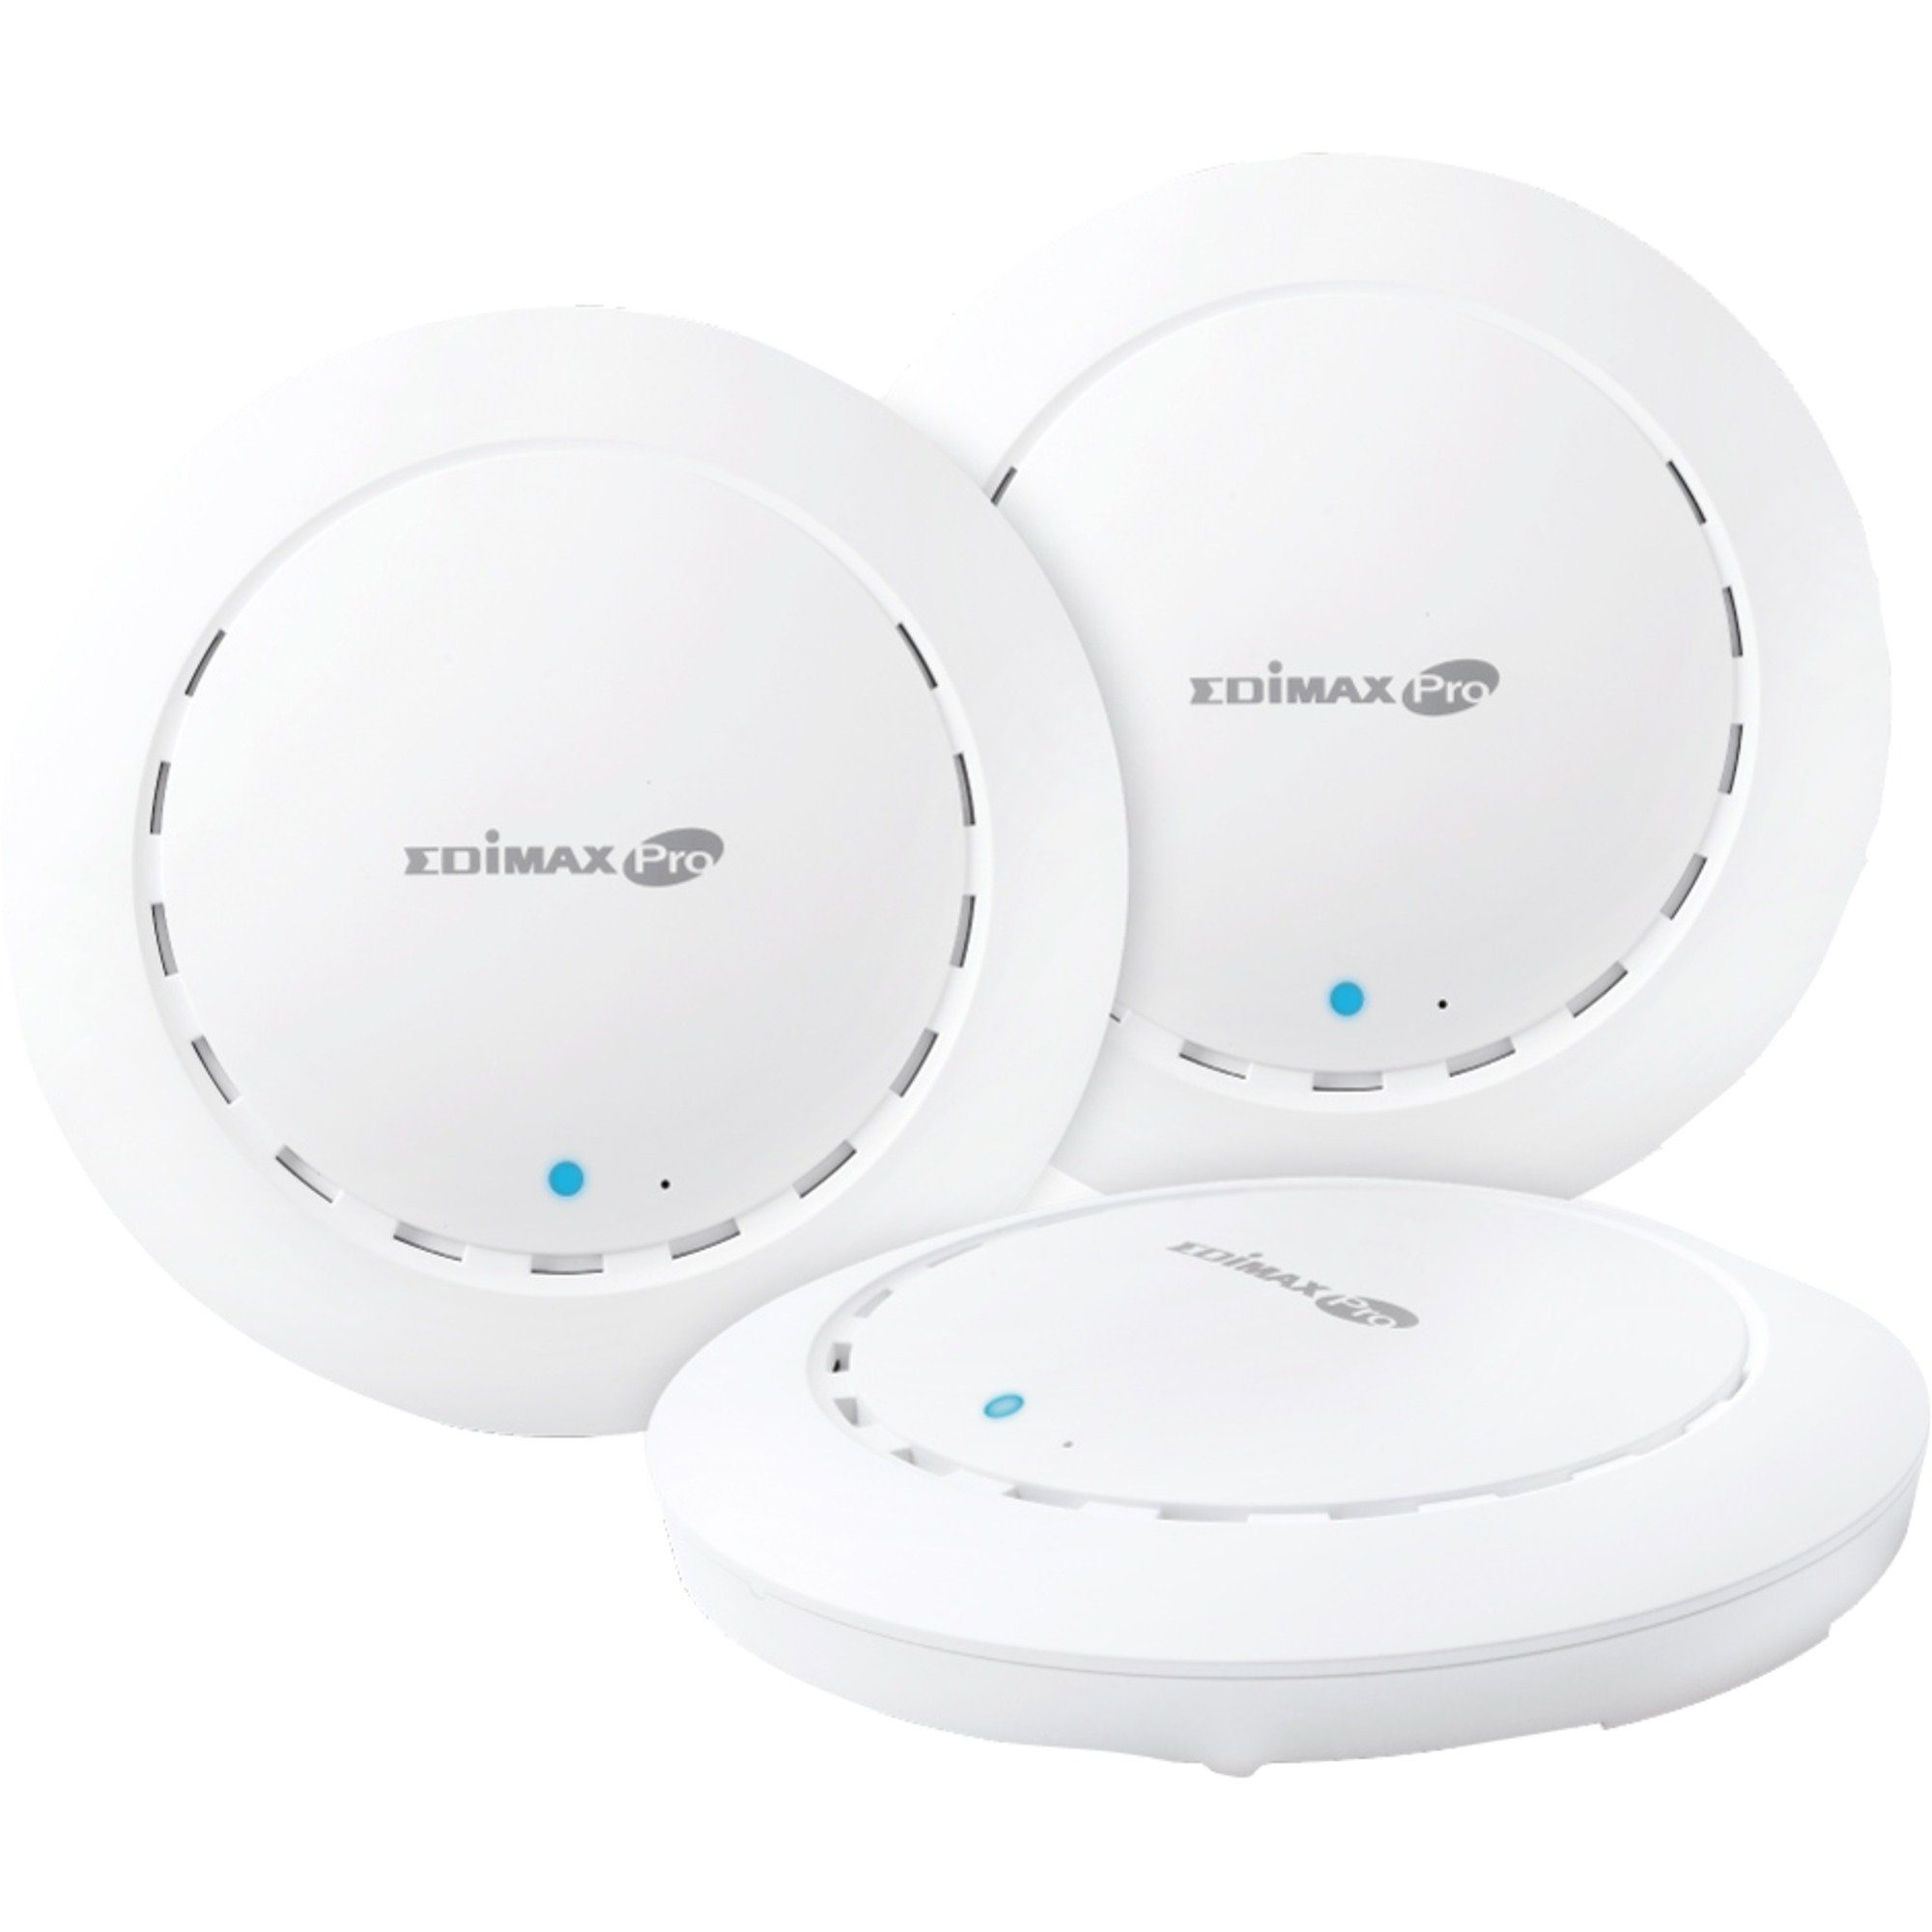 Edimax Access Point »Pro CAP300 3er Pack«